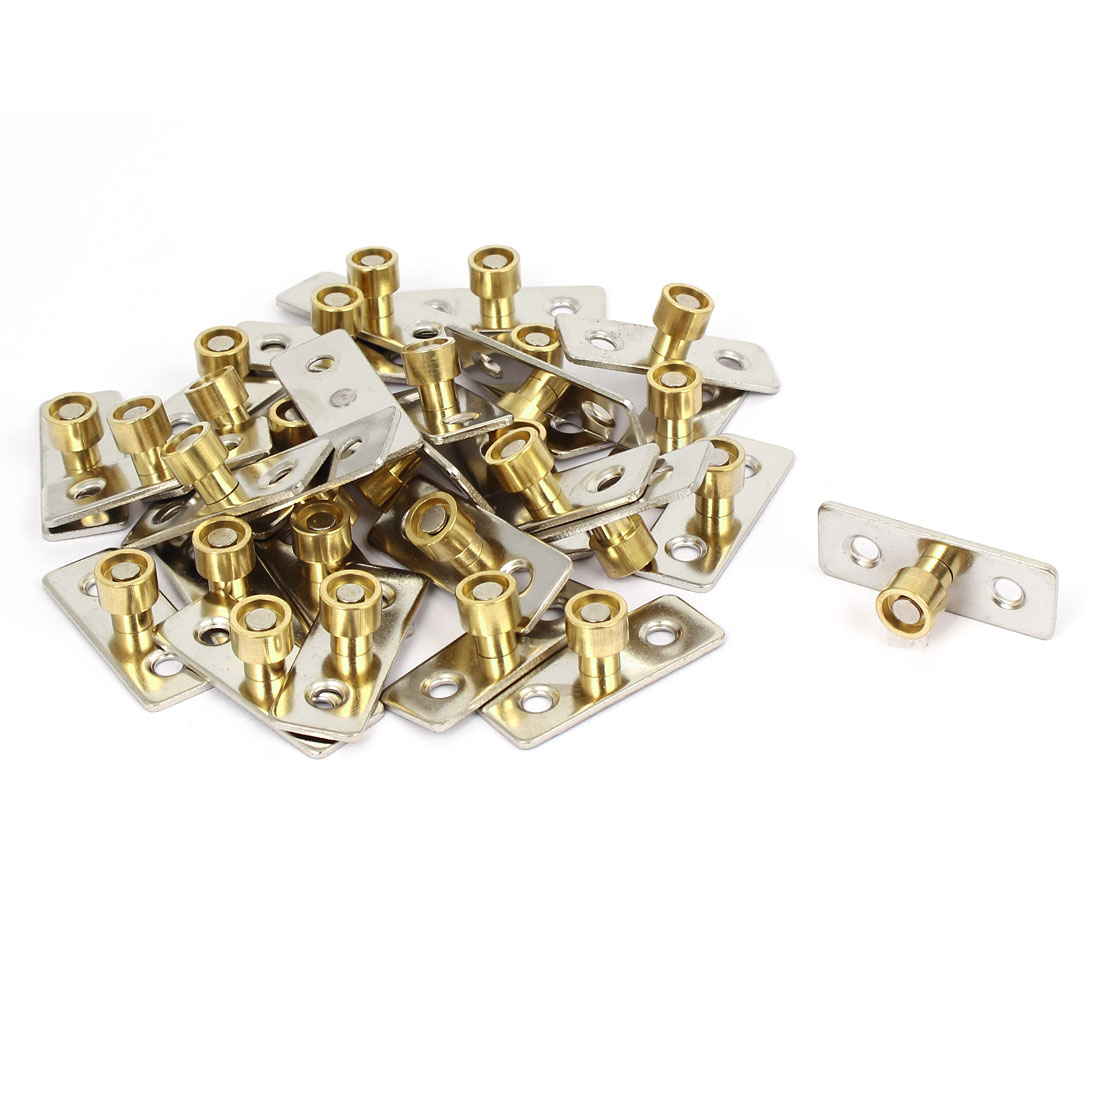 12mm Dia Wooden Sliding Door Bearing Pulley Retainer Guide Locator 30pcs